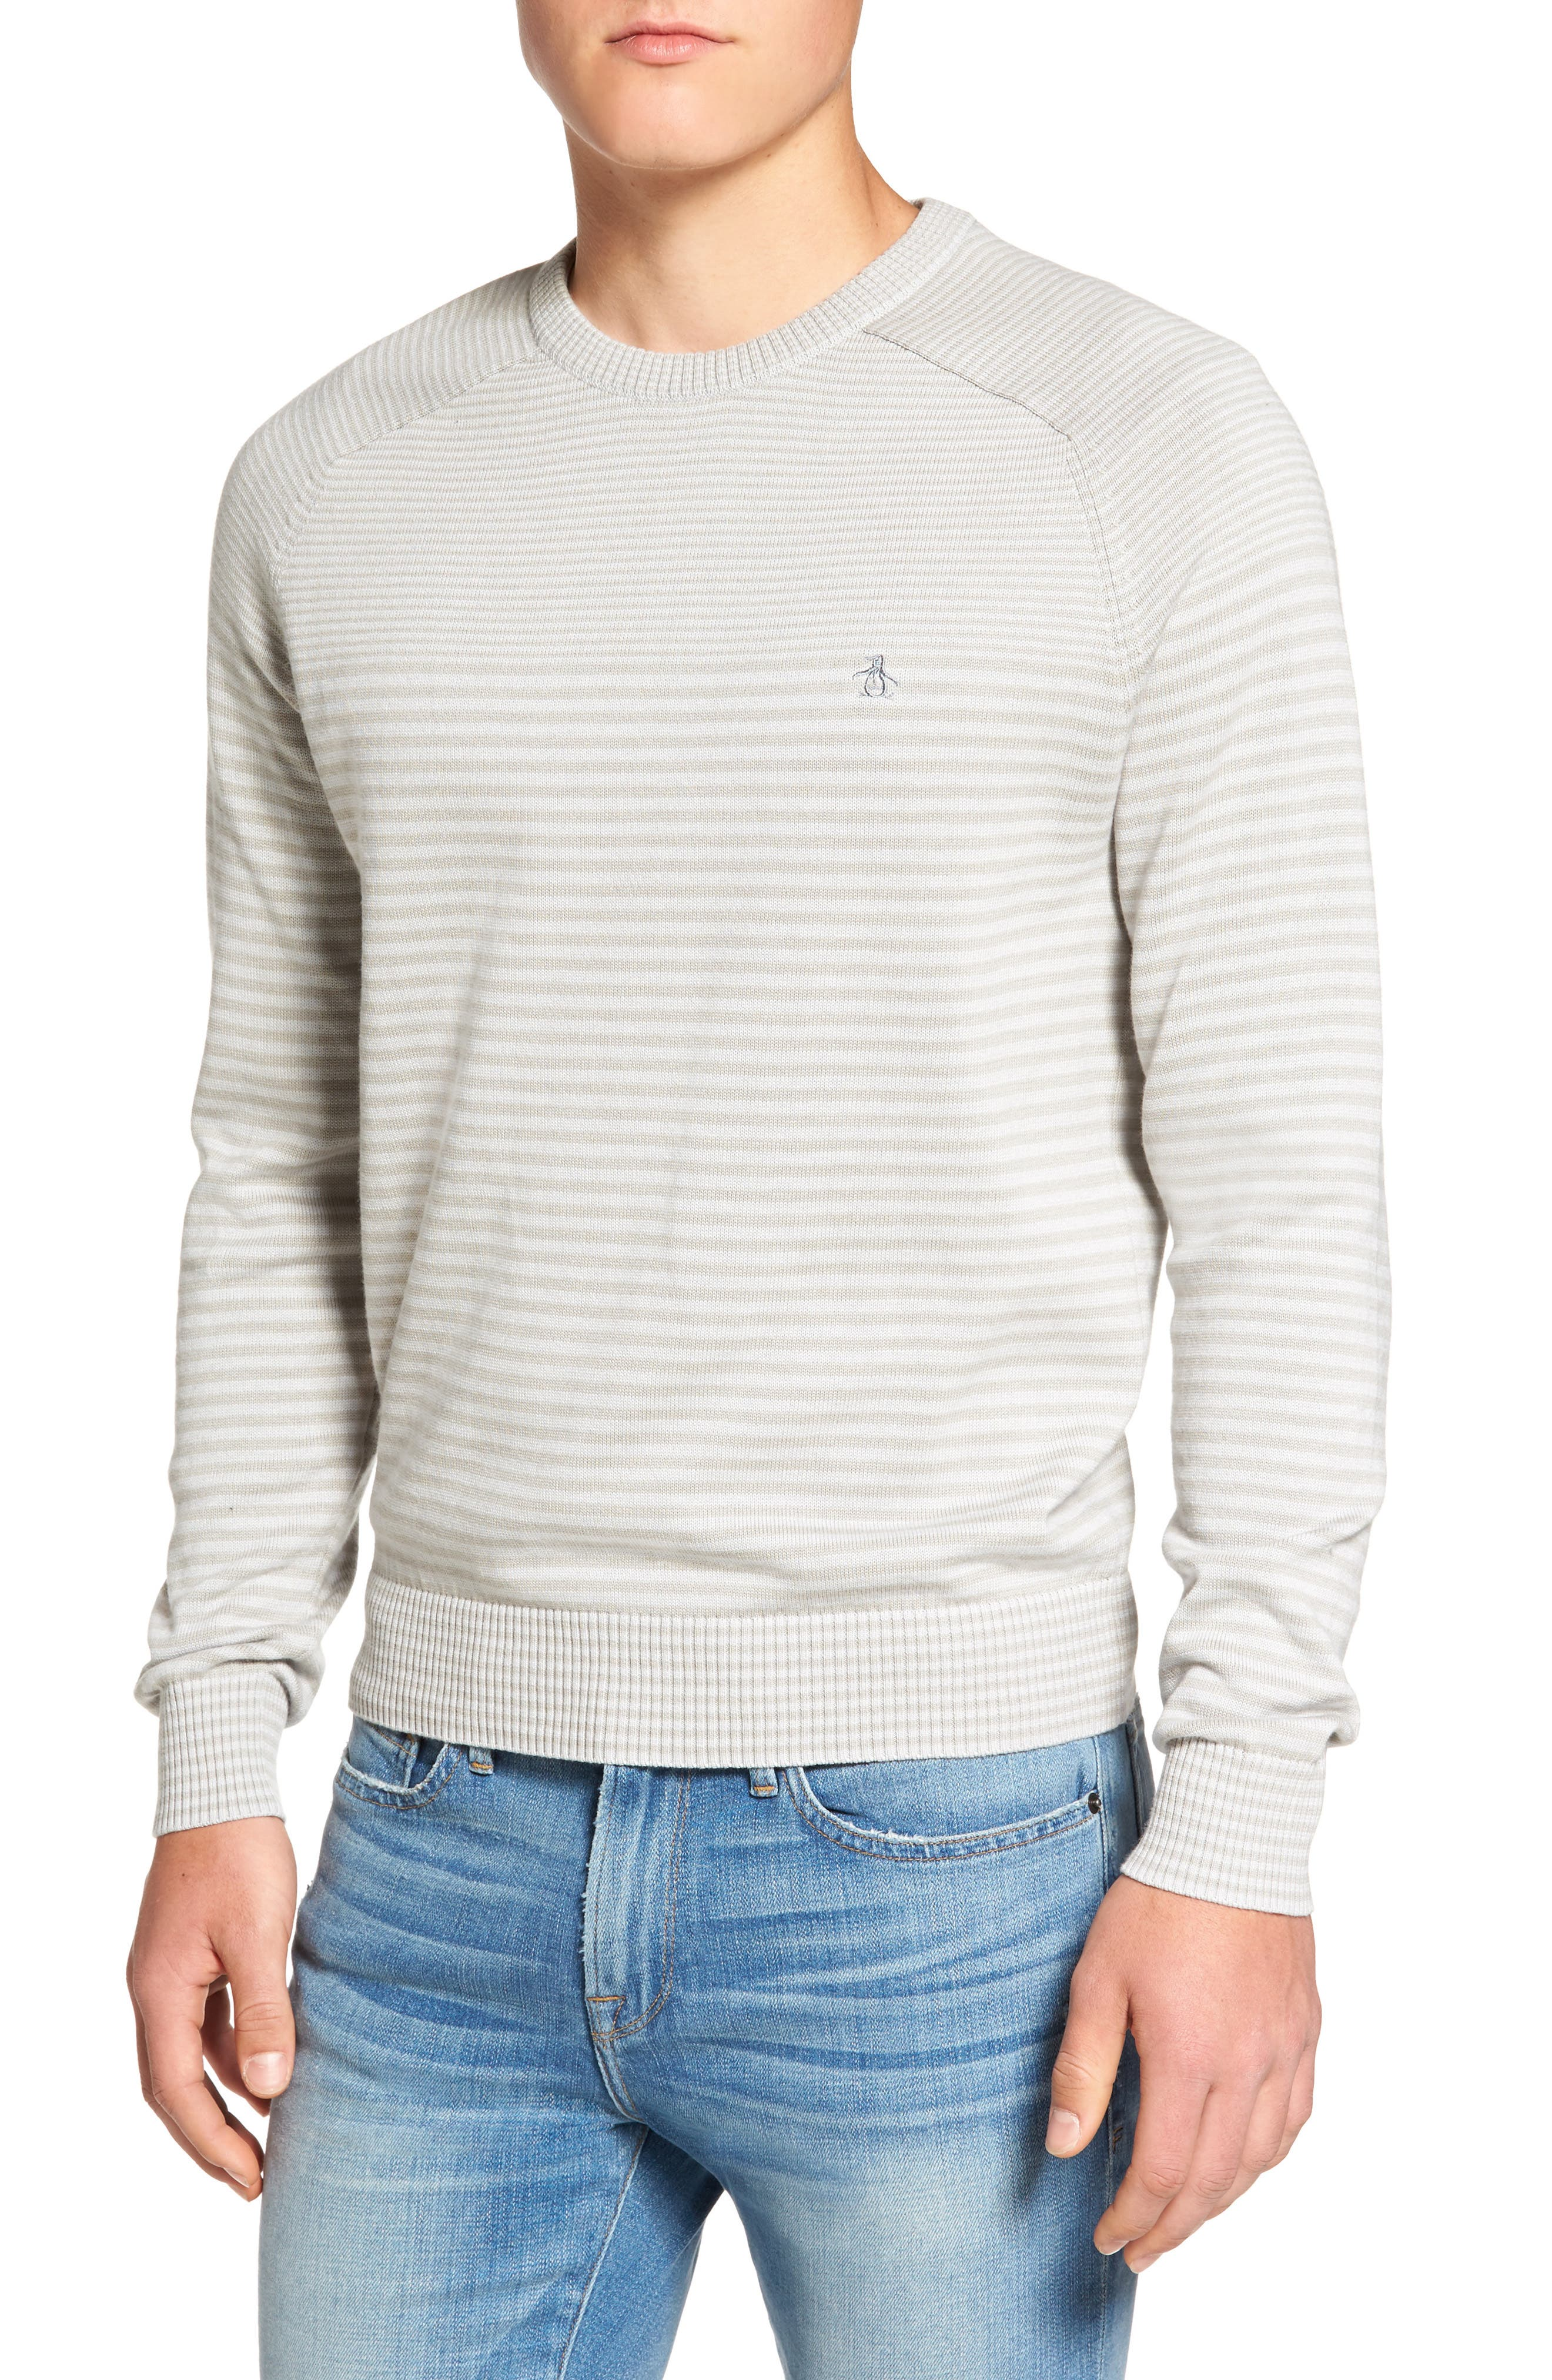 Original Penguin Engineered Stripe Sweater